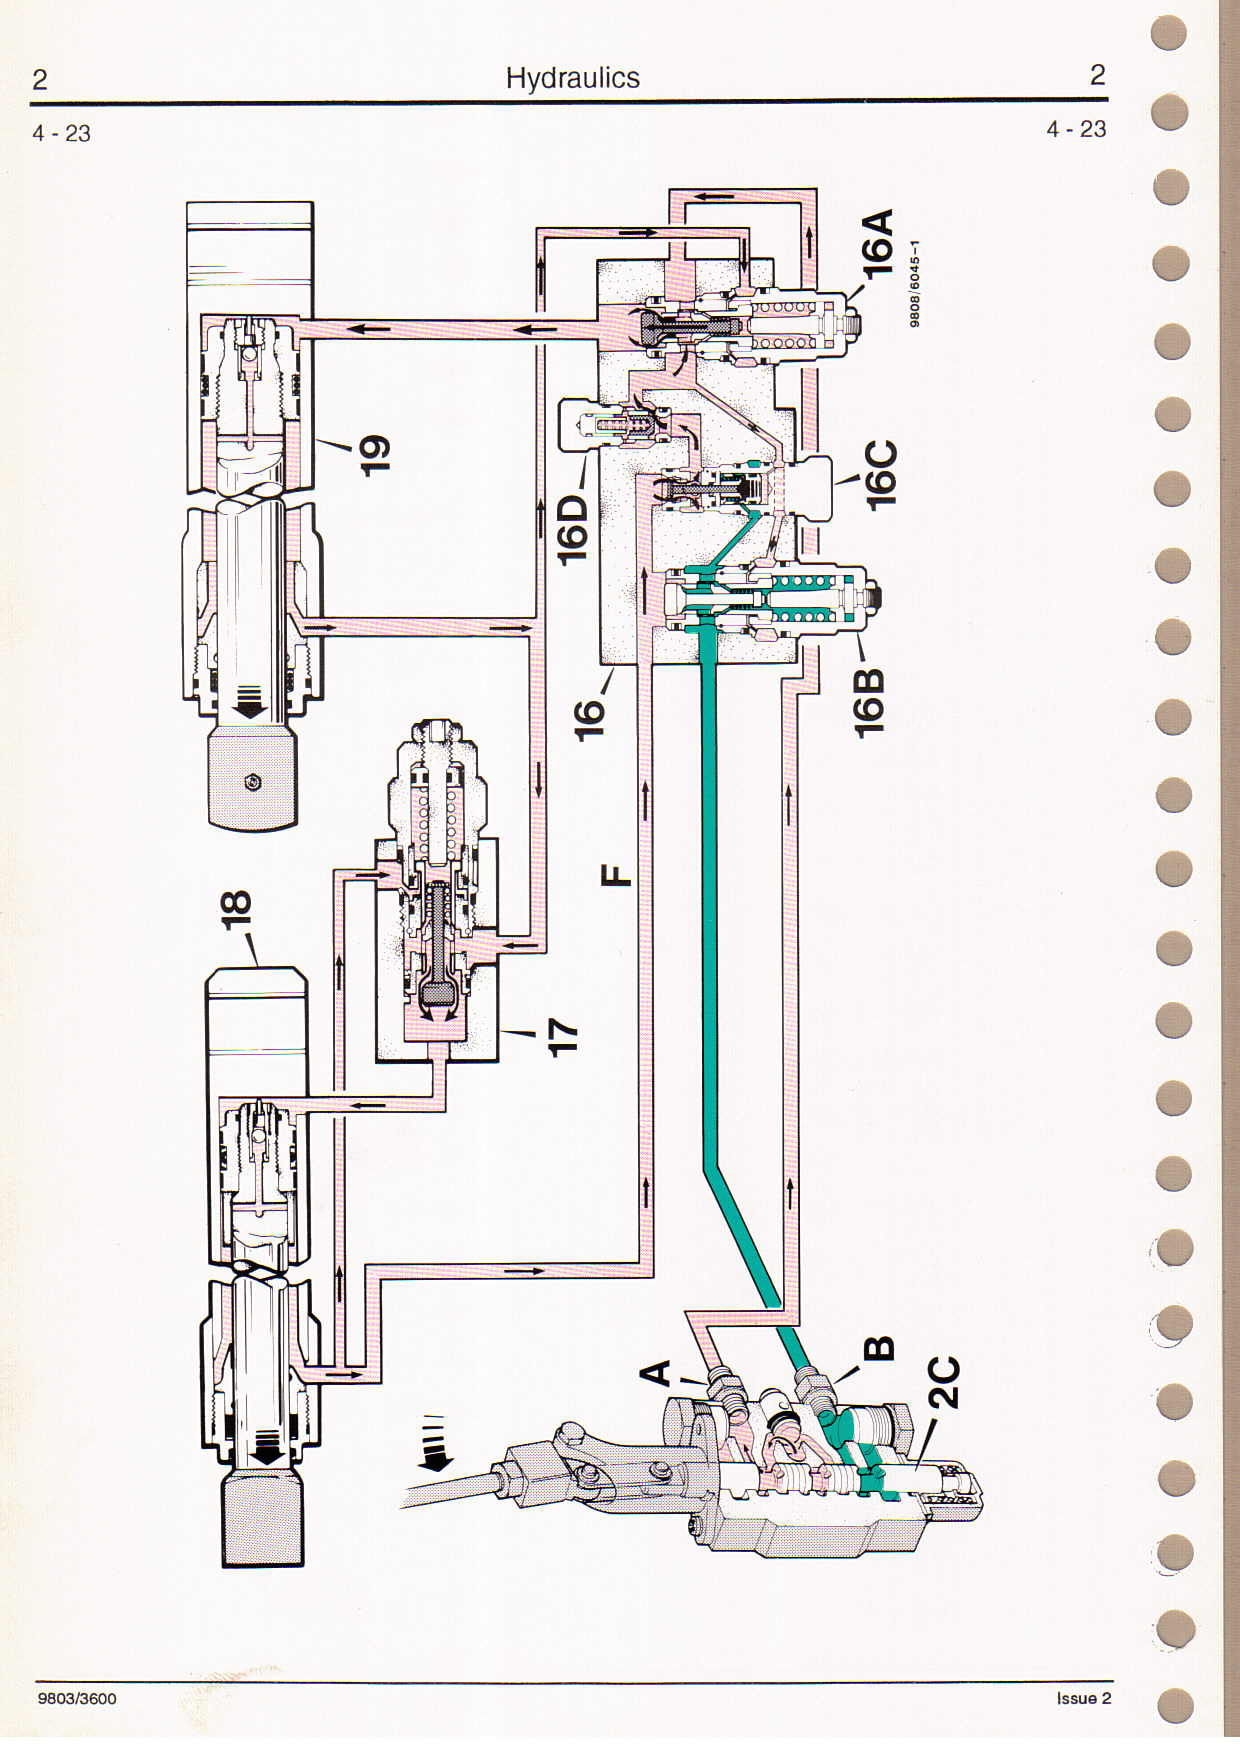 Jcb Hydraulic System Diagram Search For Wiring Diagrams Schematic Free Picture Boom Get Image About Excavator